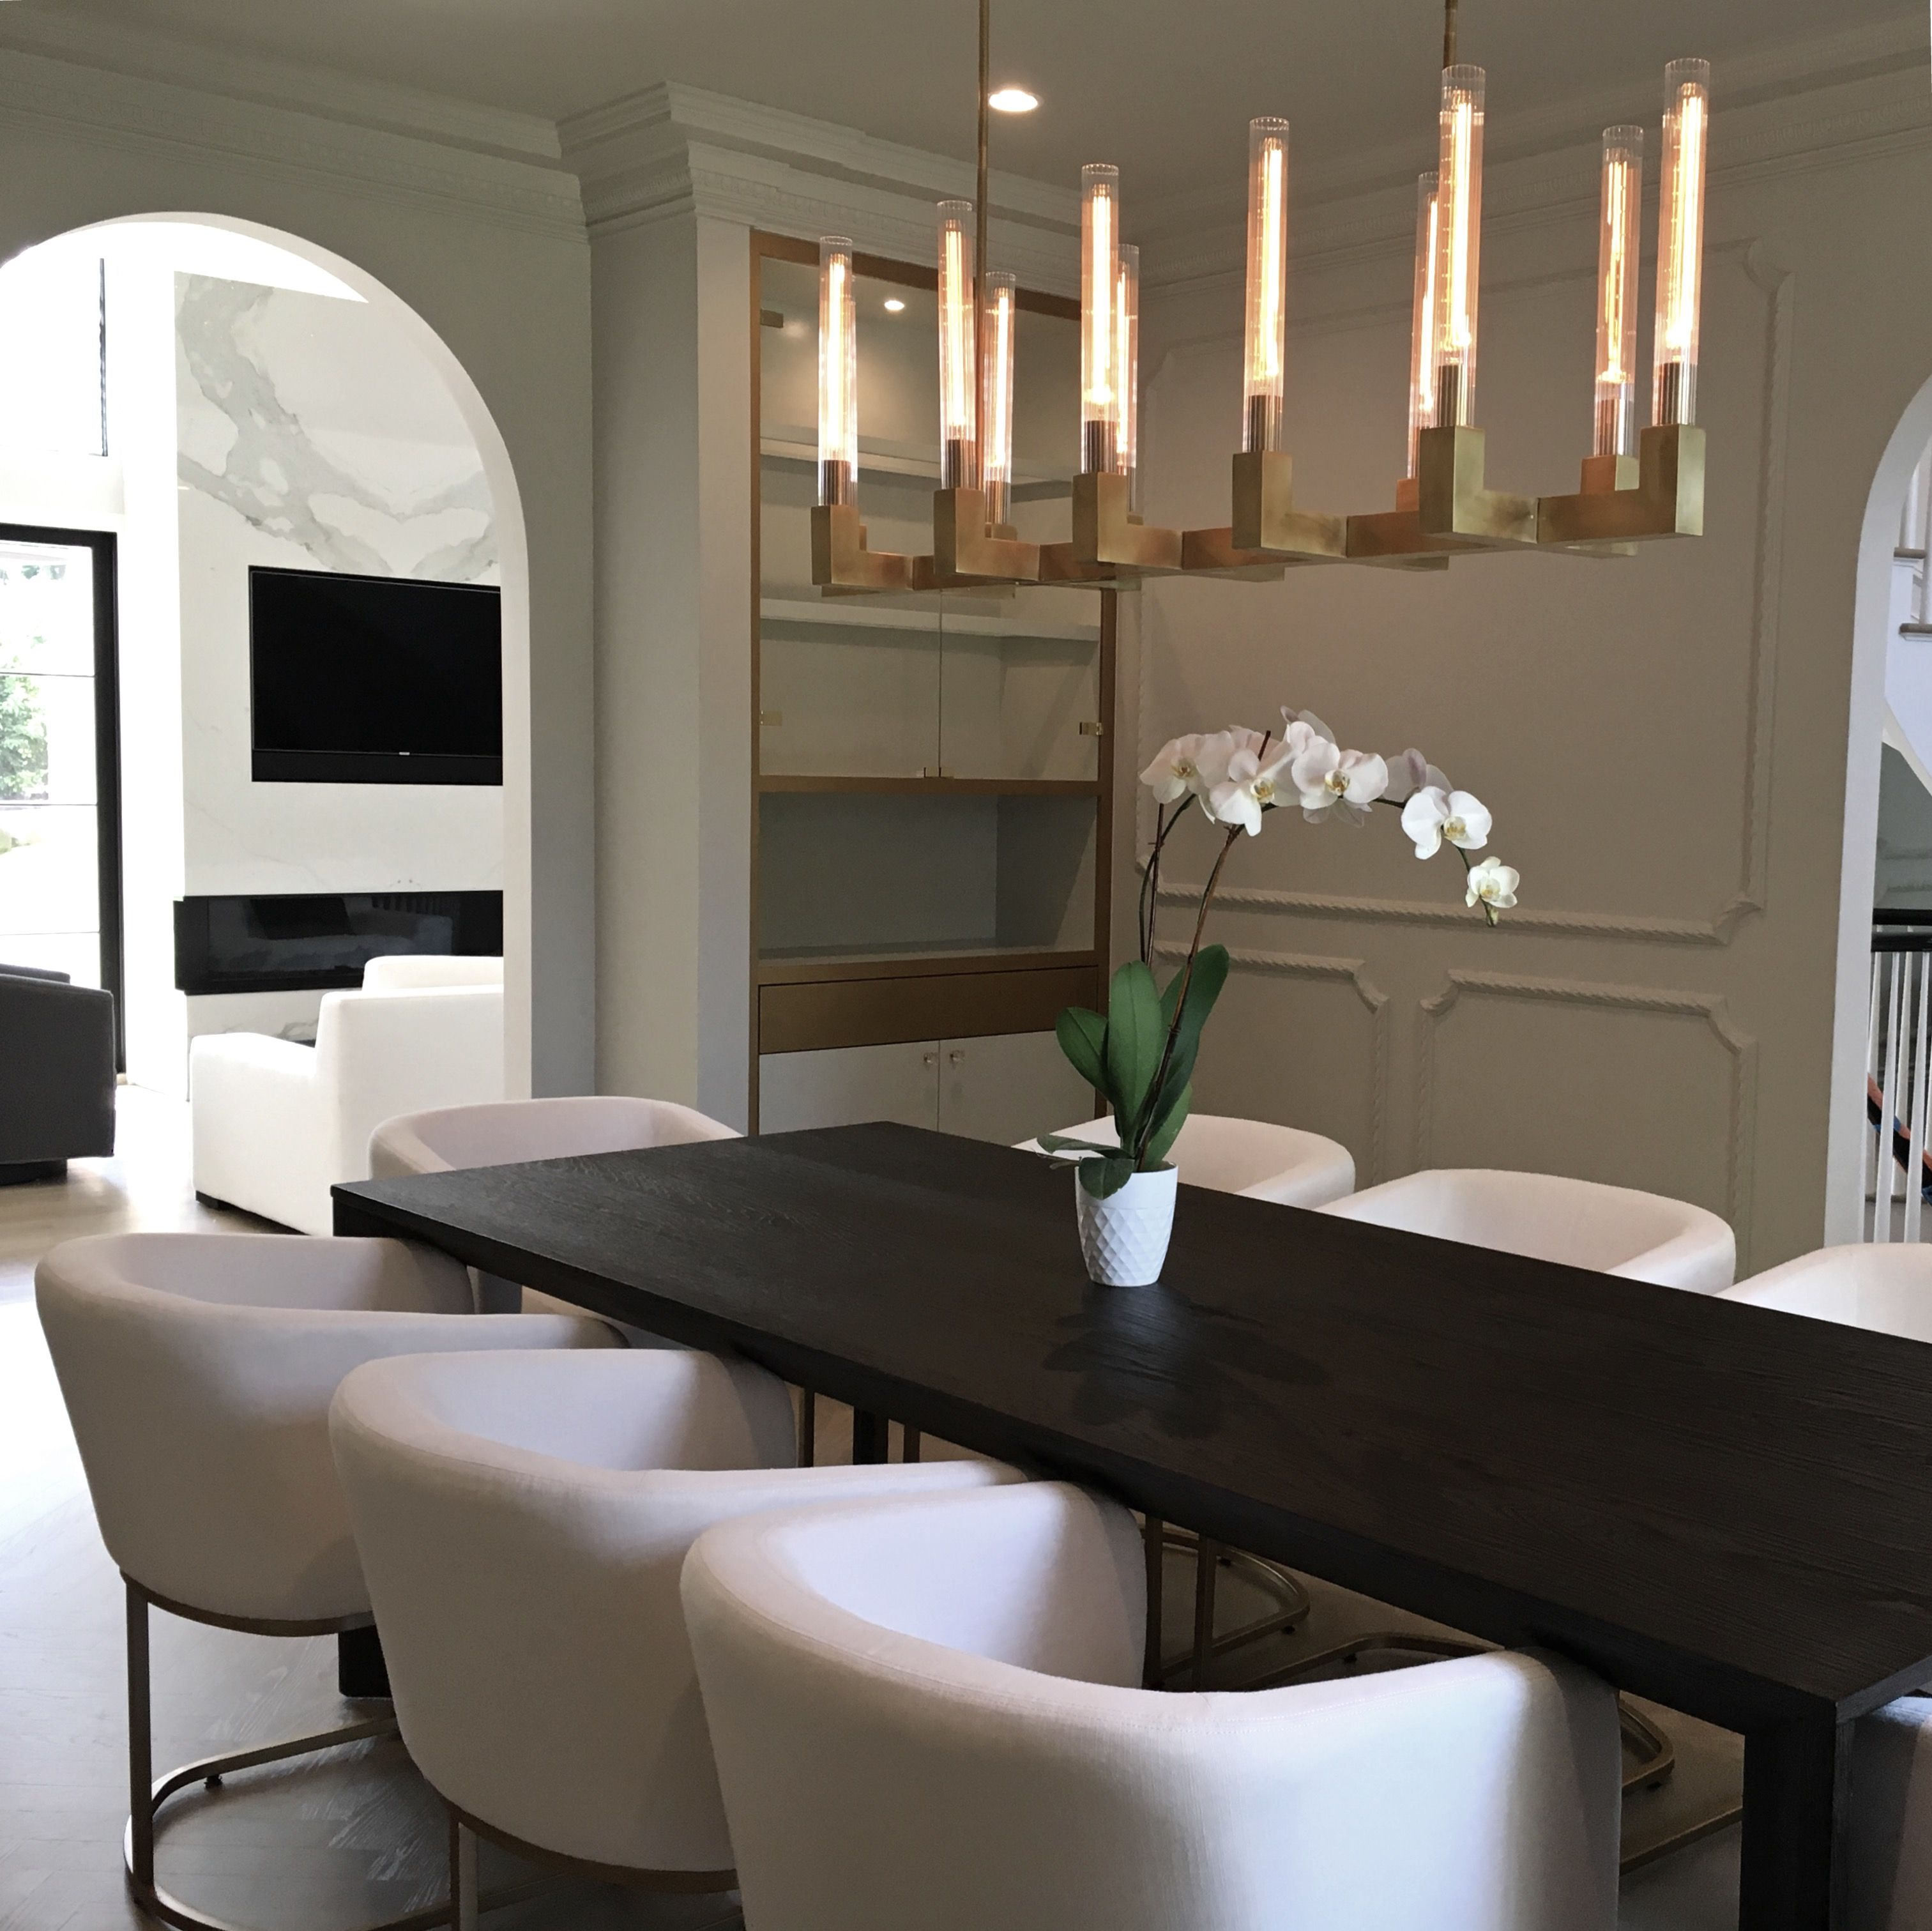 126 Custom Luxury Dining Room Interior Designs: One Of Our Long Island Residence's Dining Room Design With